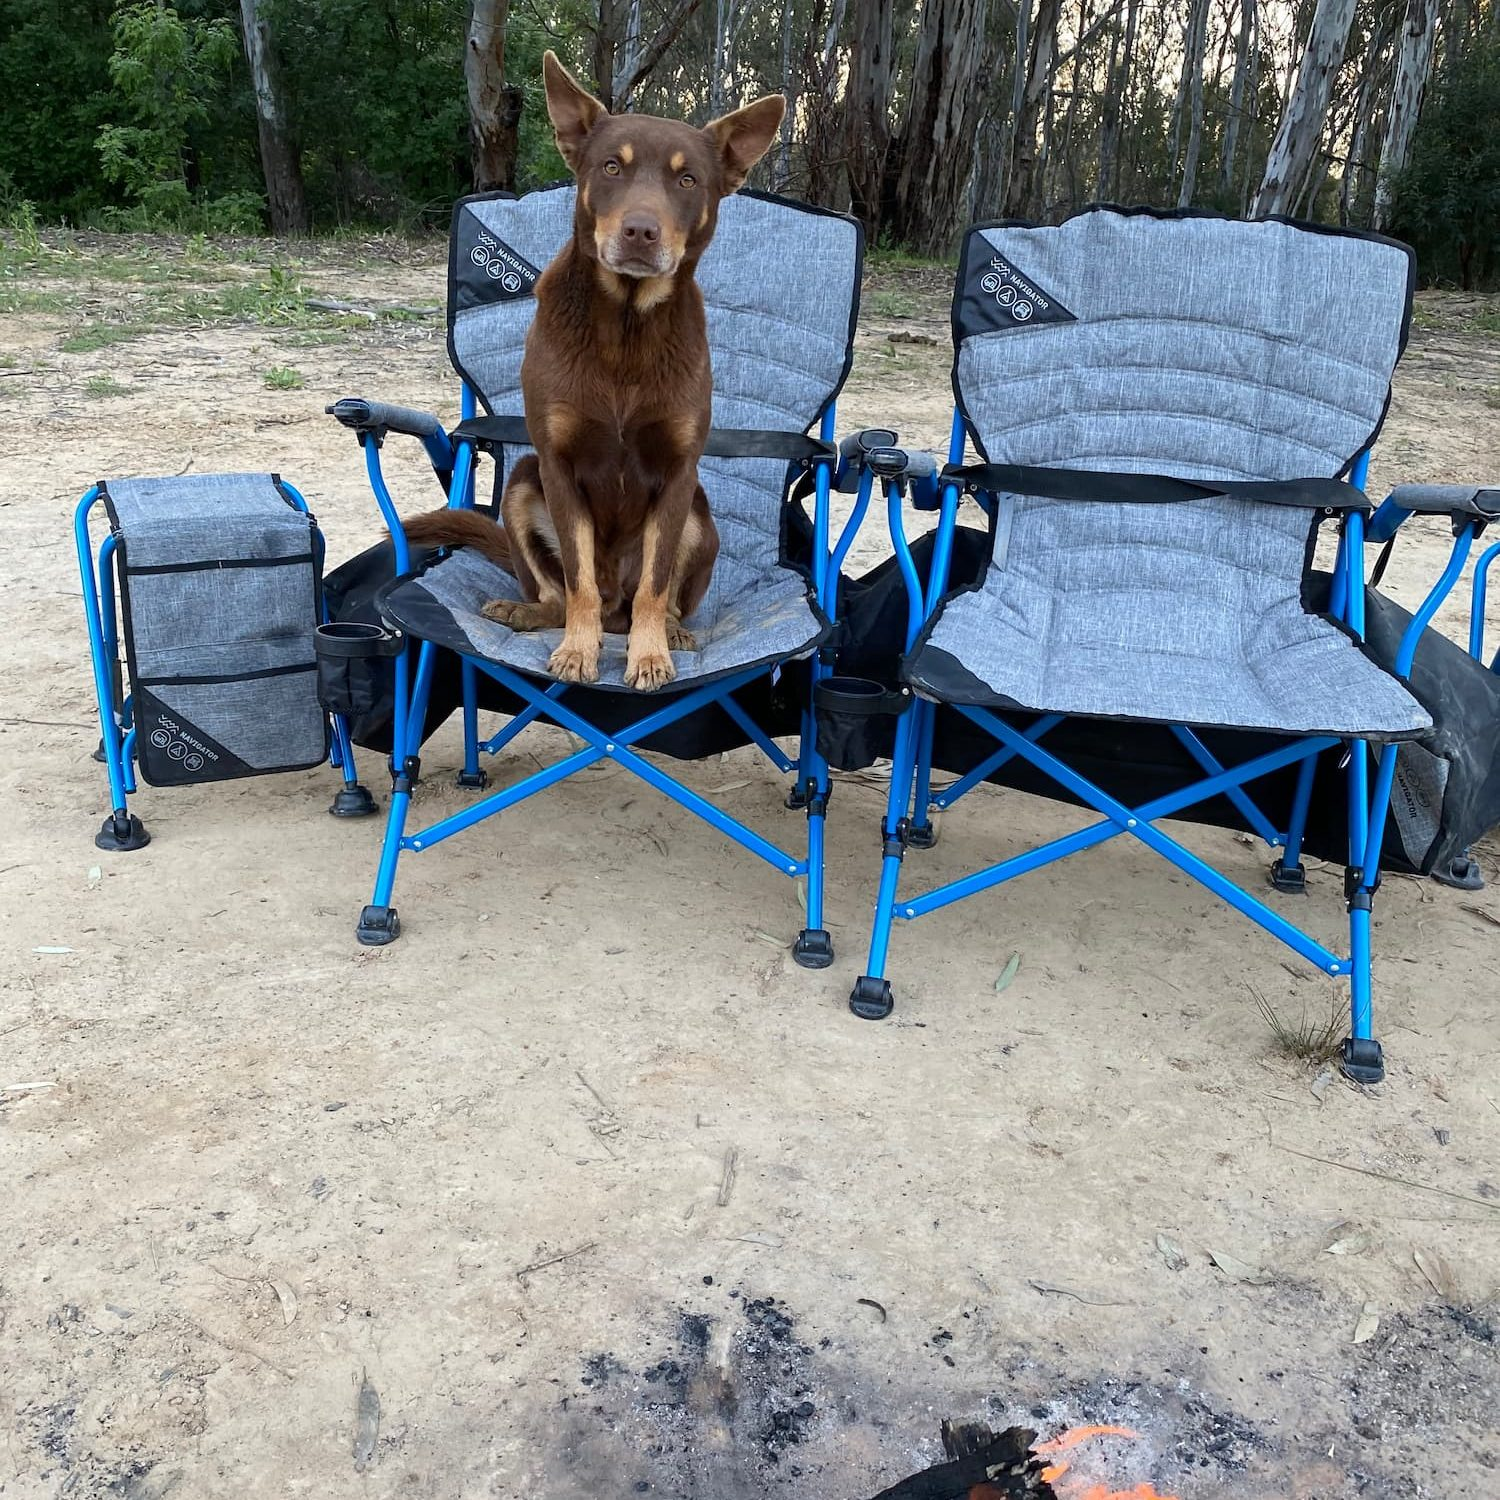 dog-sitting-on-camping-chair